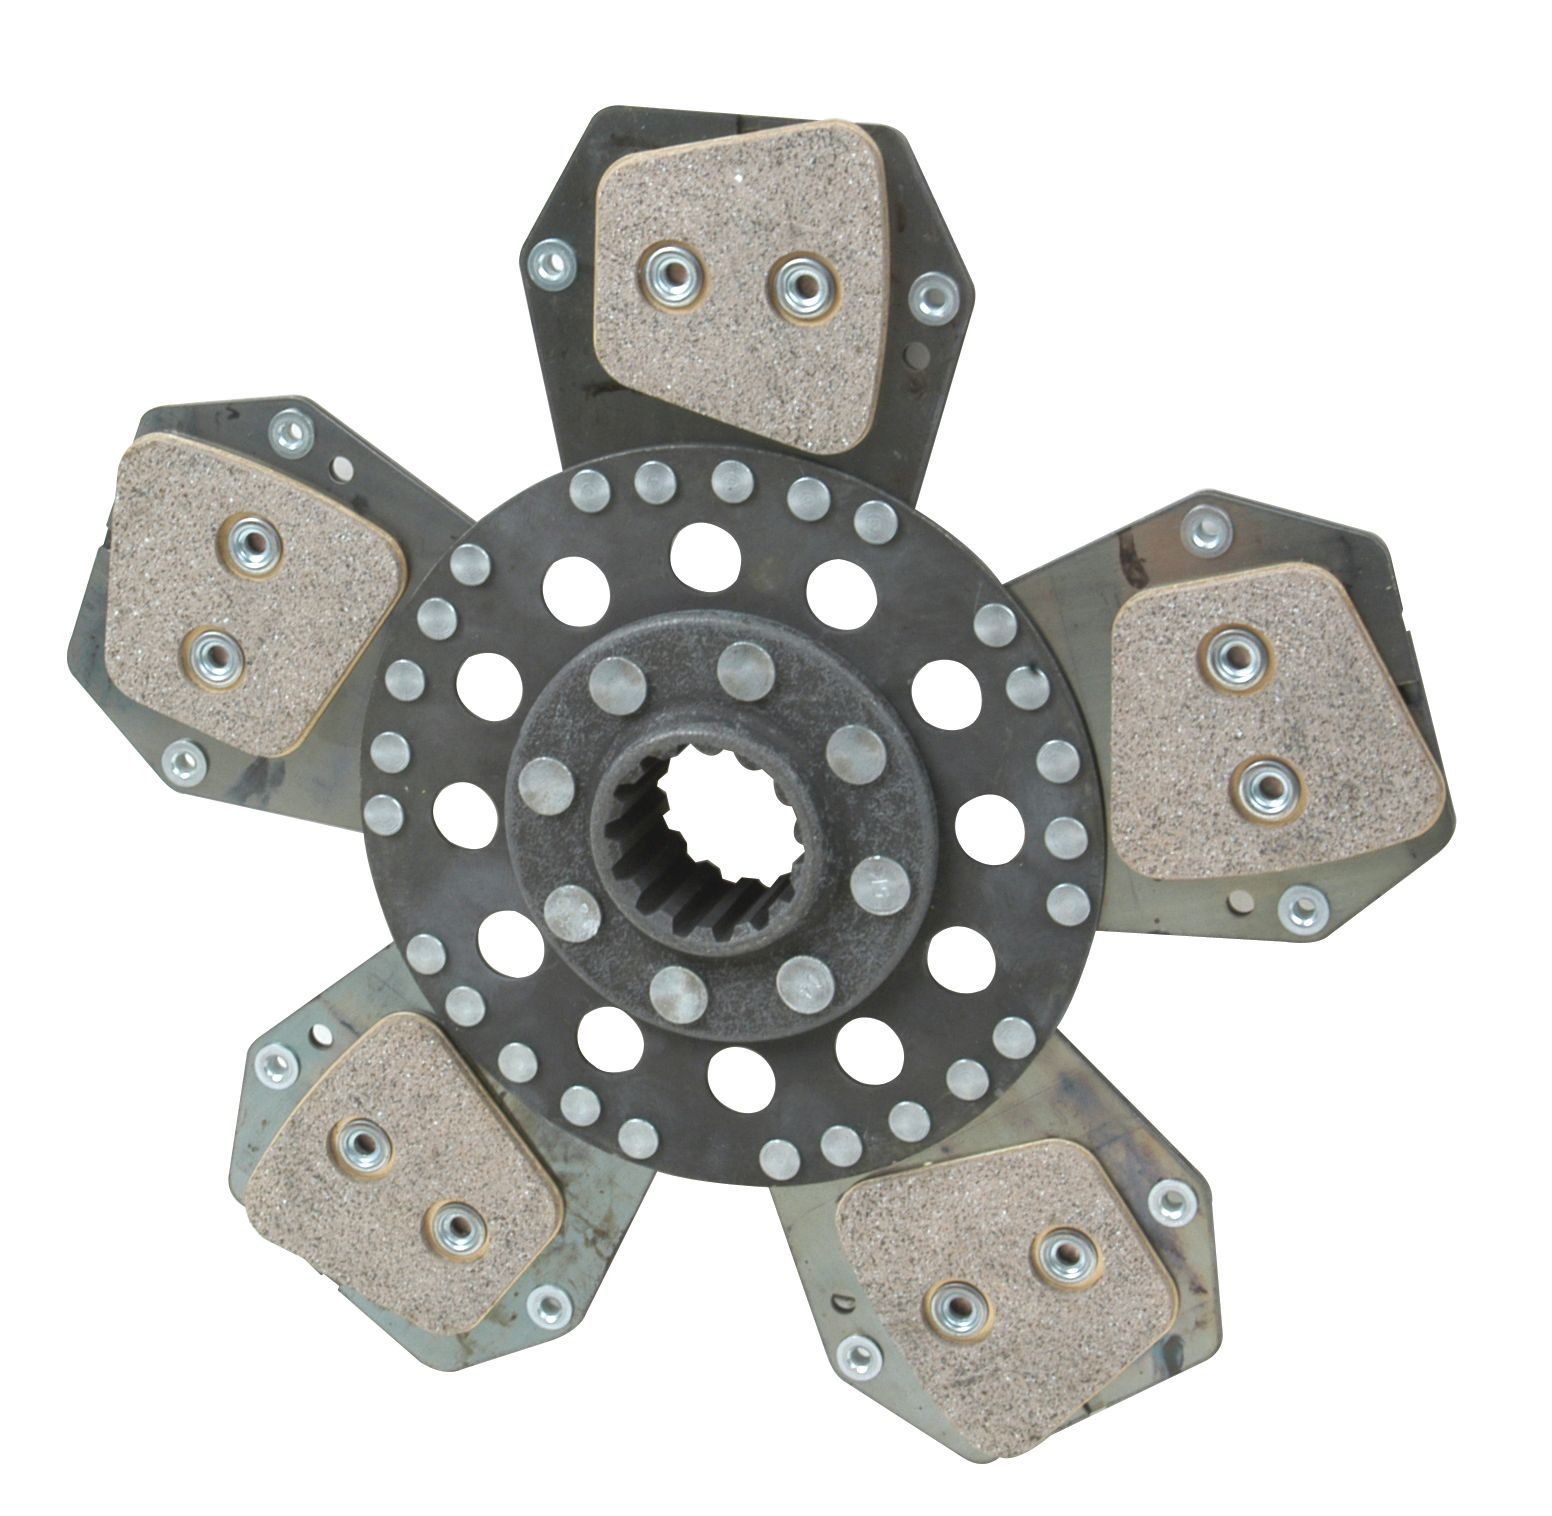 UNIVERSAL TRACTORS CLUTCH PLATE MAIN 5 PADDLE 280